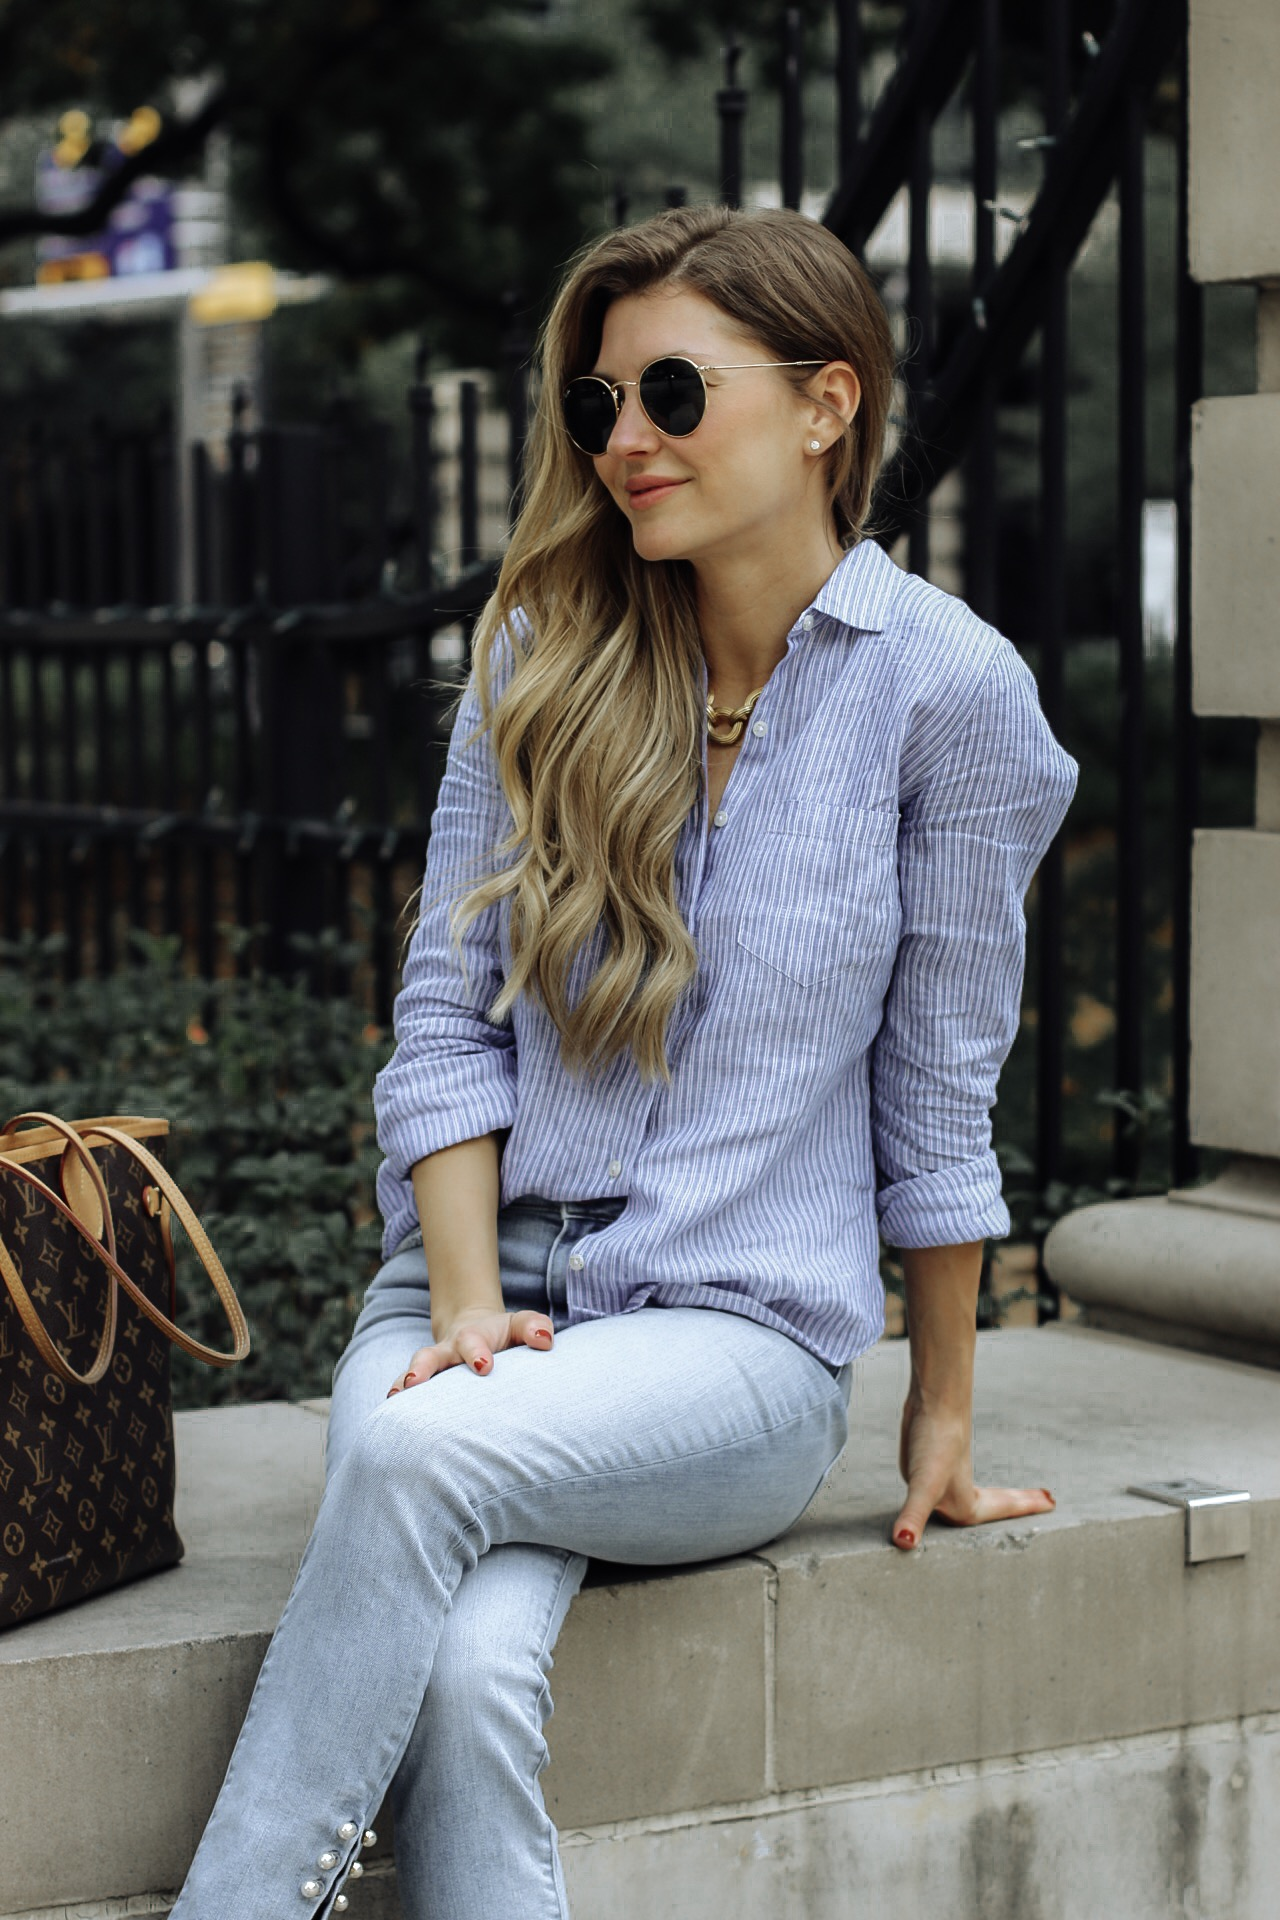 AshLee Williams in pearl embellishment pair of jeans sitting at the library